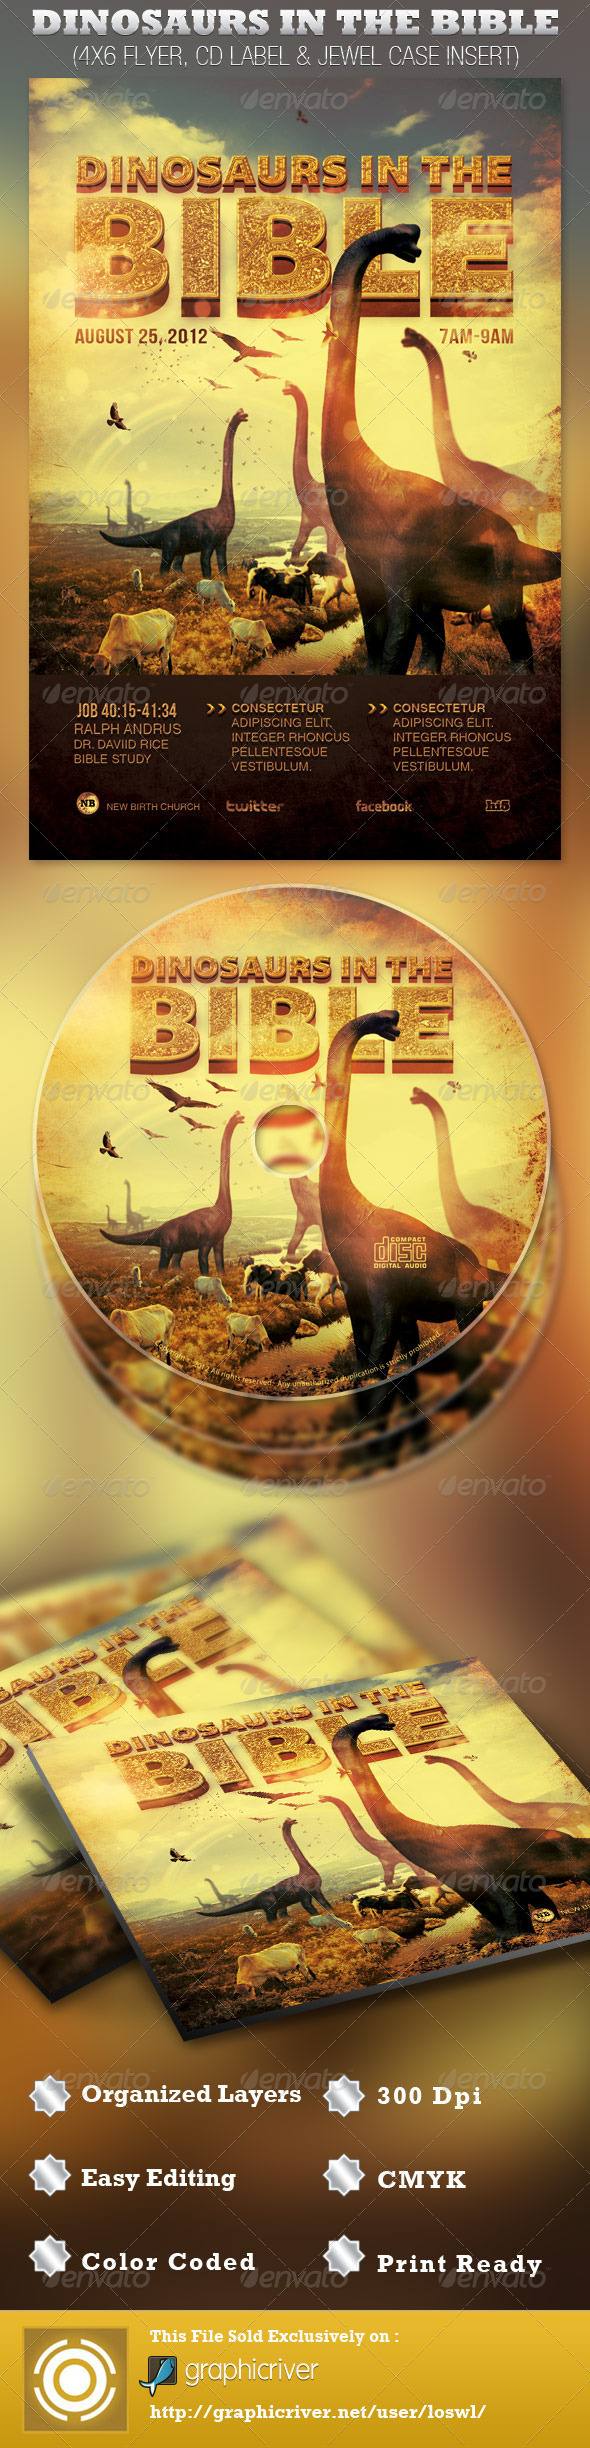 Dinosaurs in the Bible Church Flyer and CD - Church Flyers